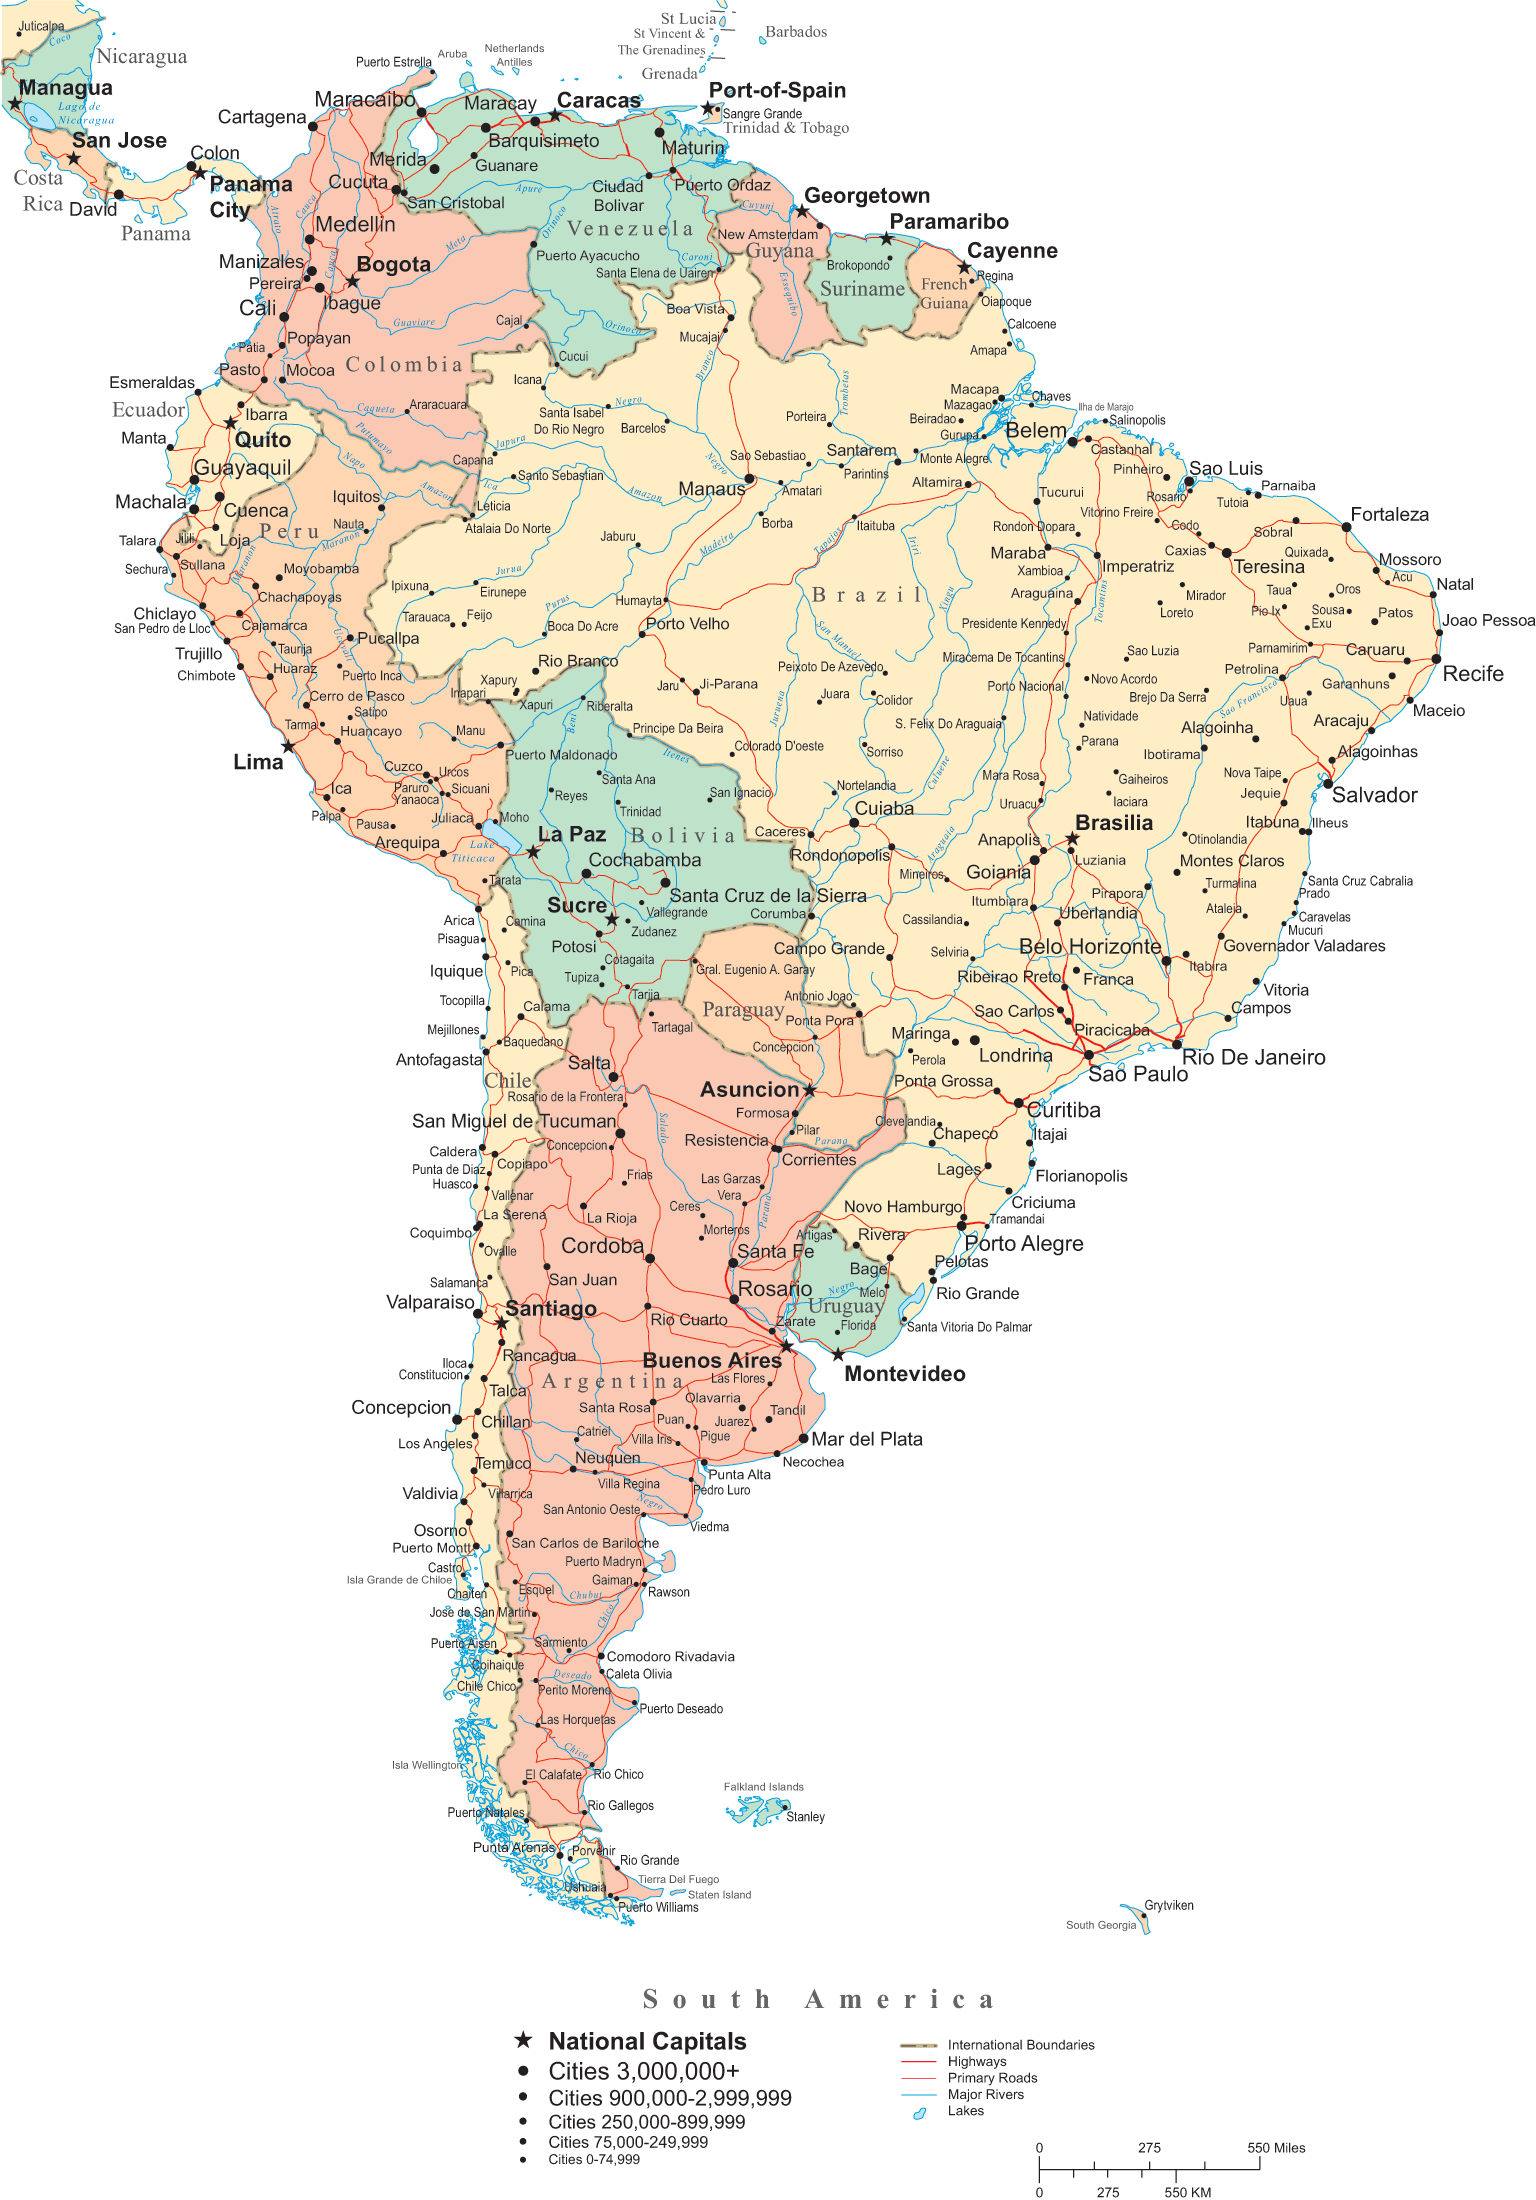 Where Is South America South America Maps  Mapsofnet - Sur america map